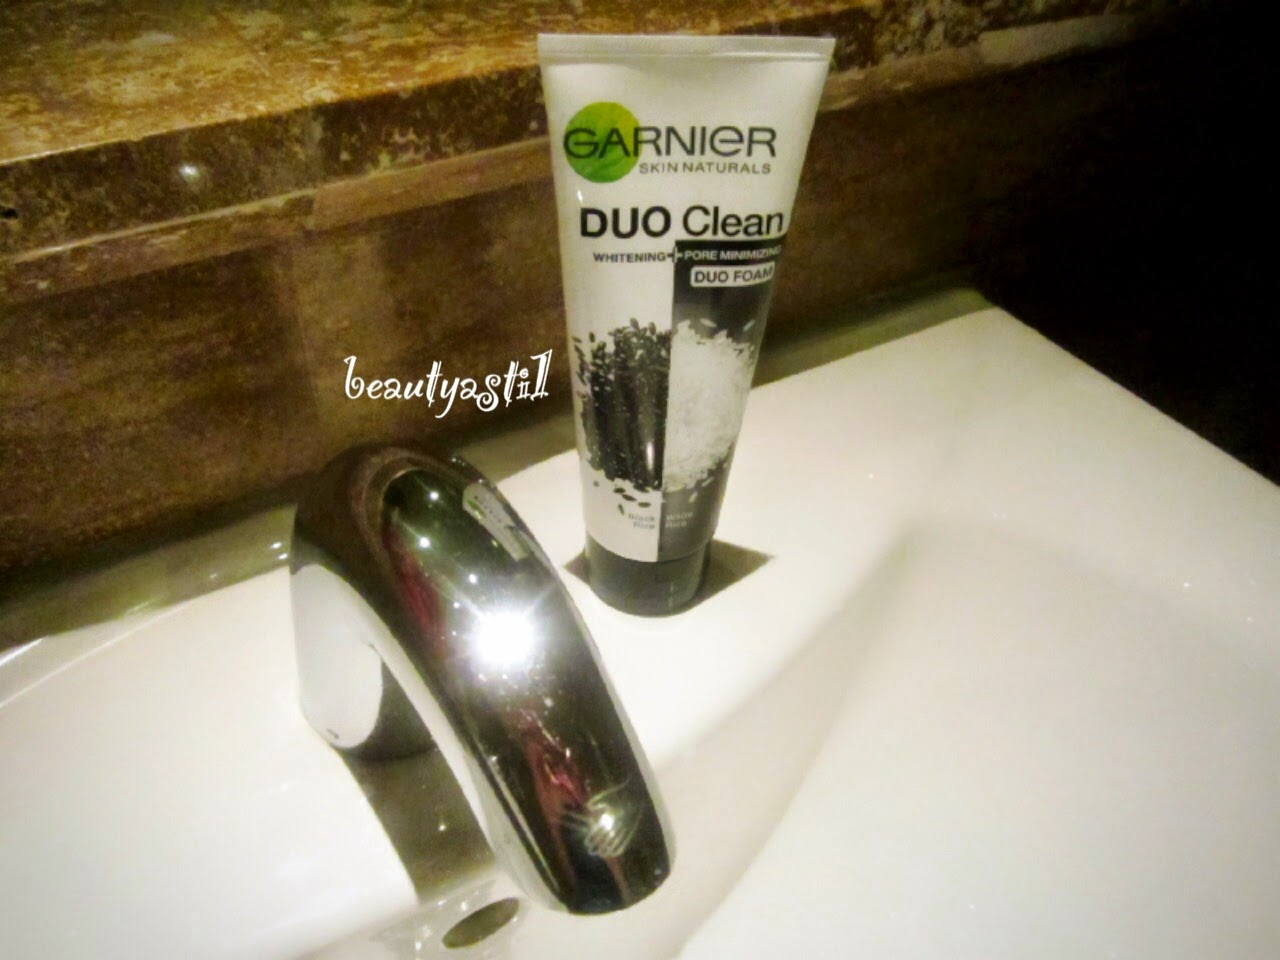 garnier-duo-clean-black-and-white-rice-extract-review.jpg